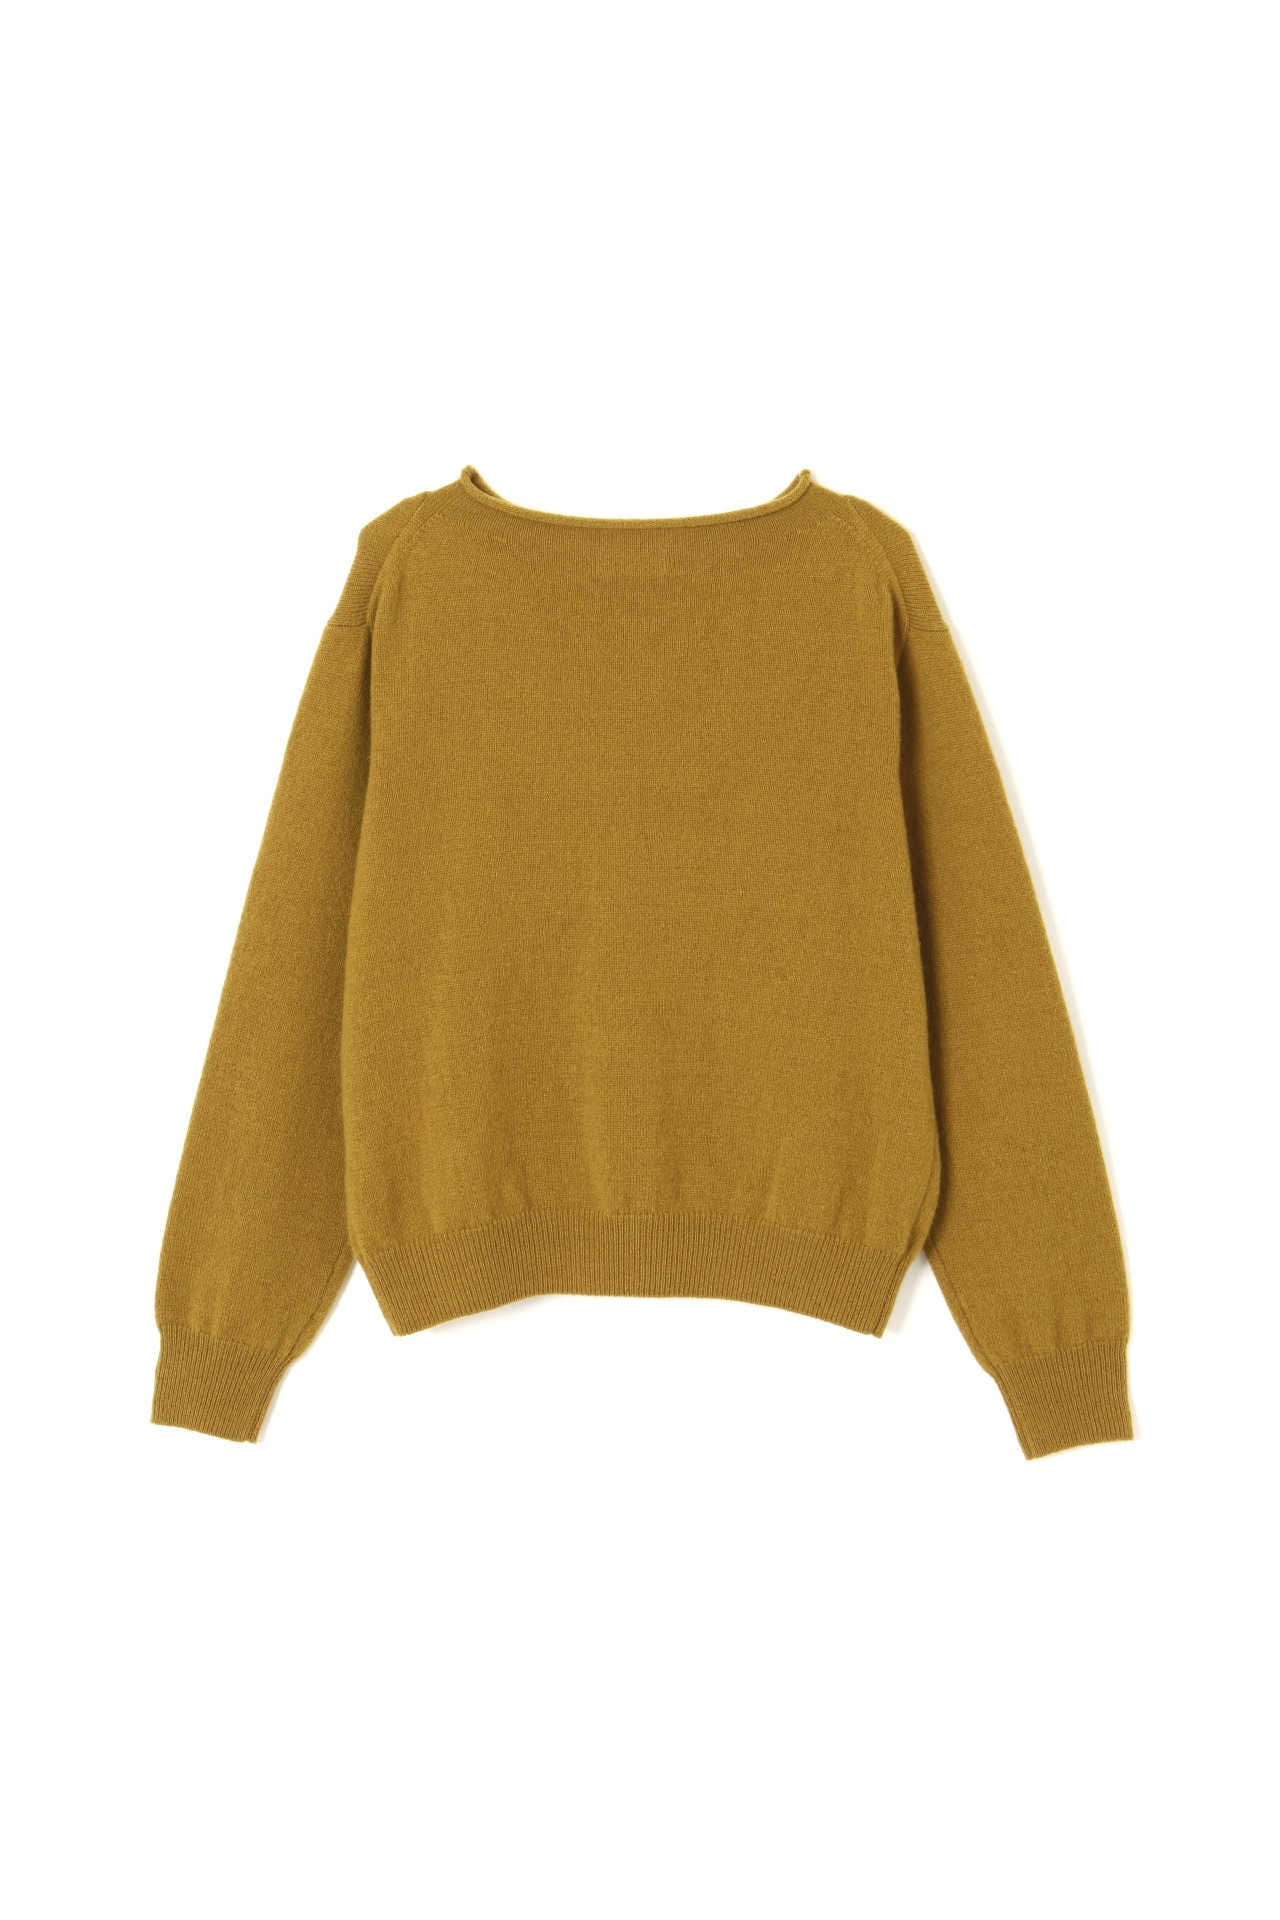 TWISTED WOOL CASHMERE JUMPER7